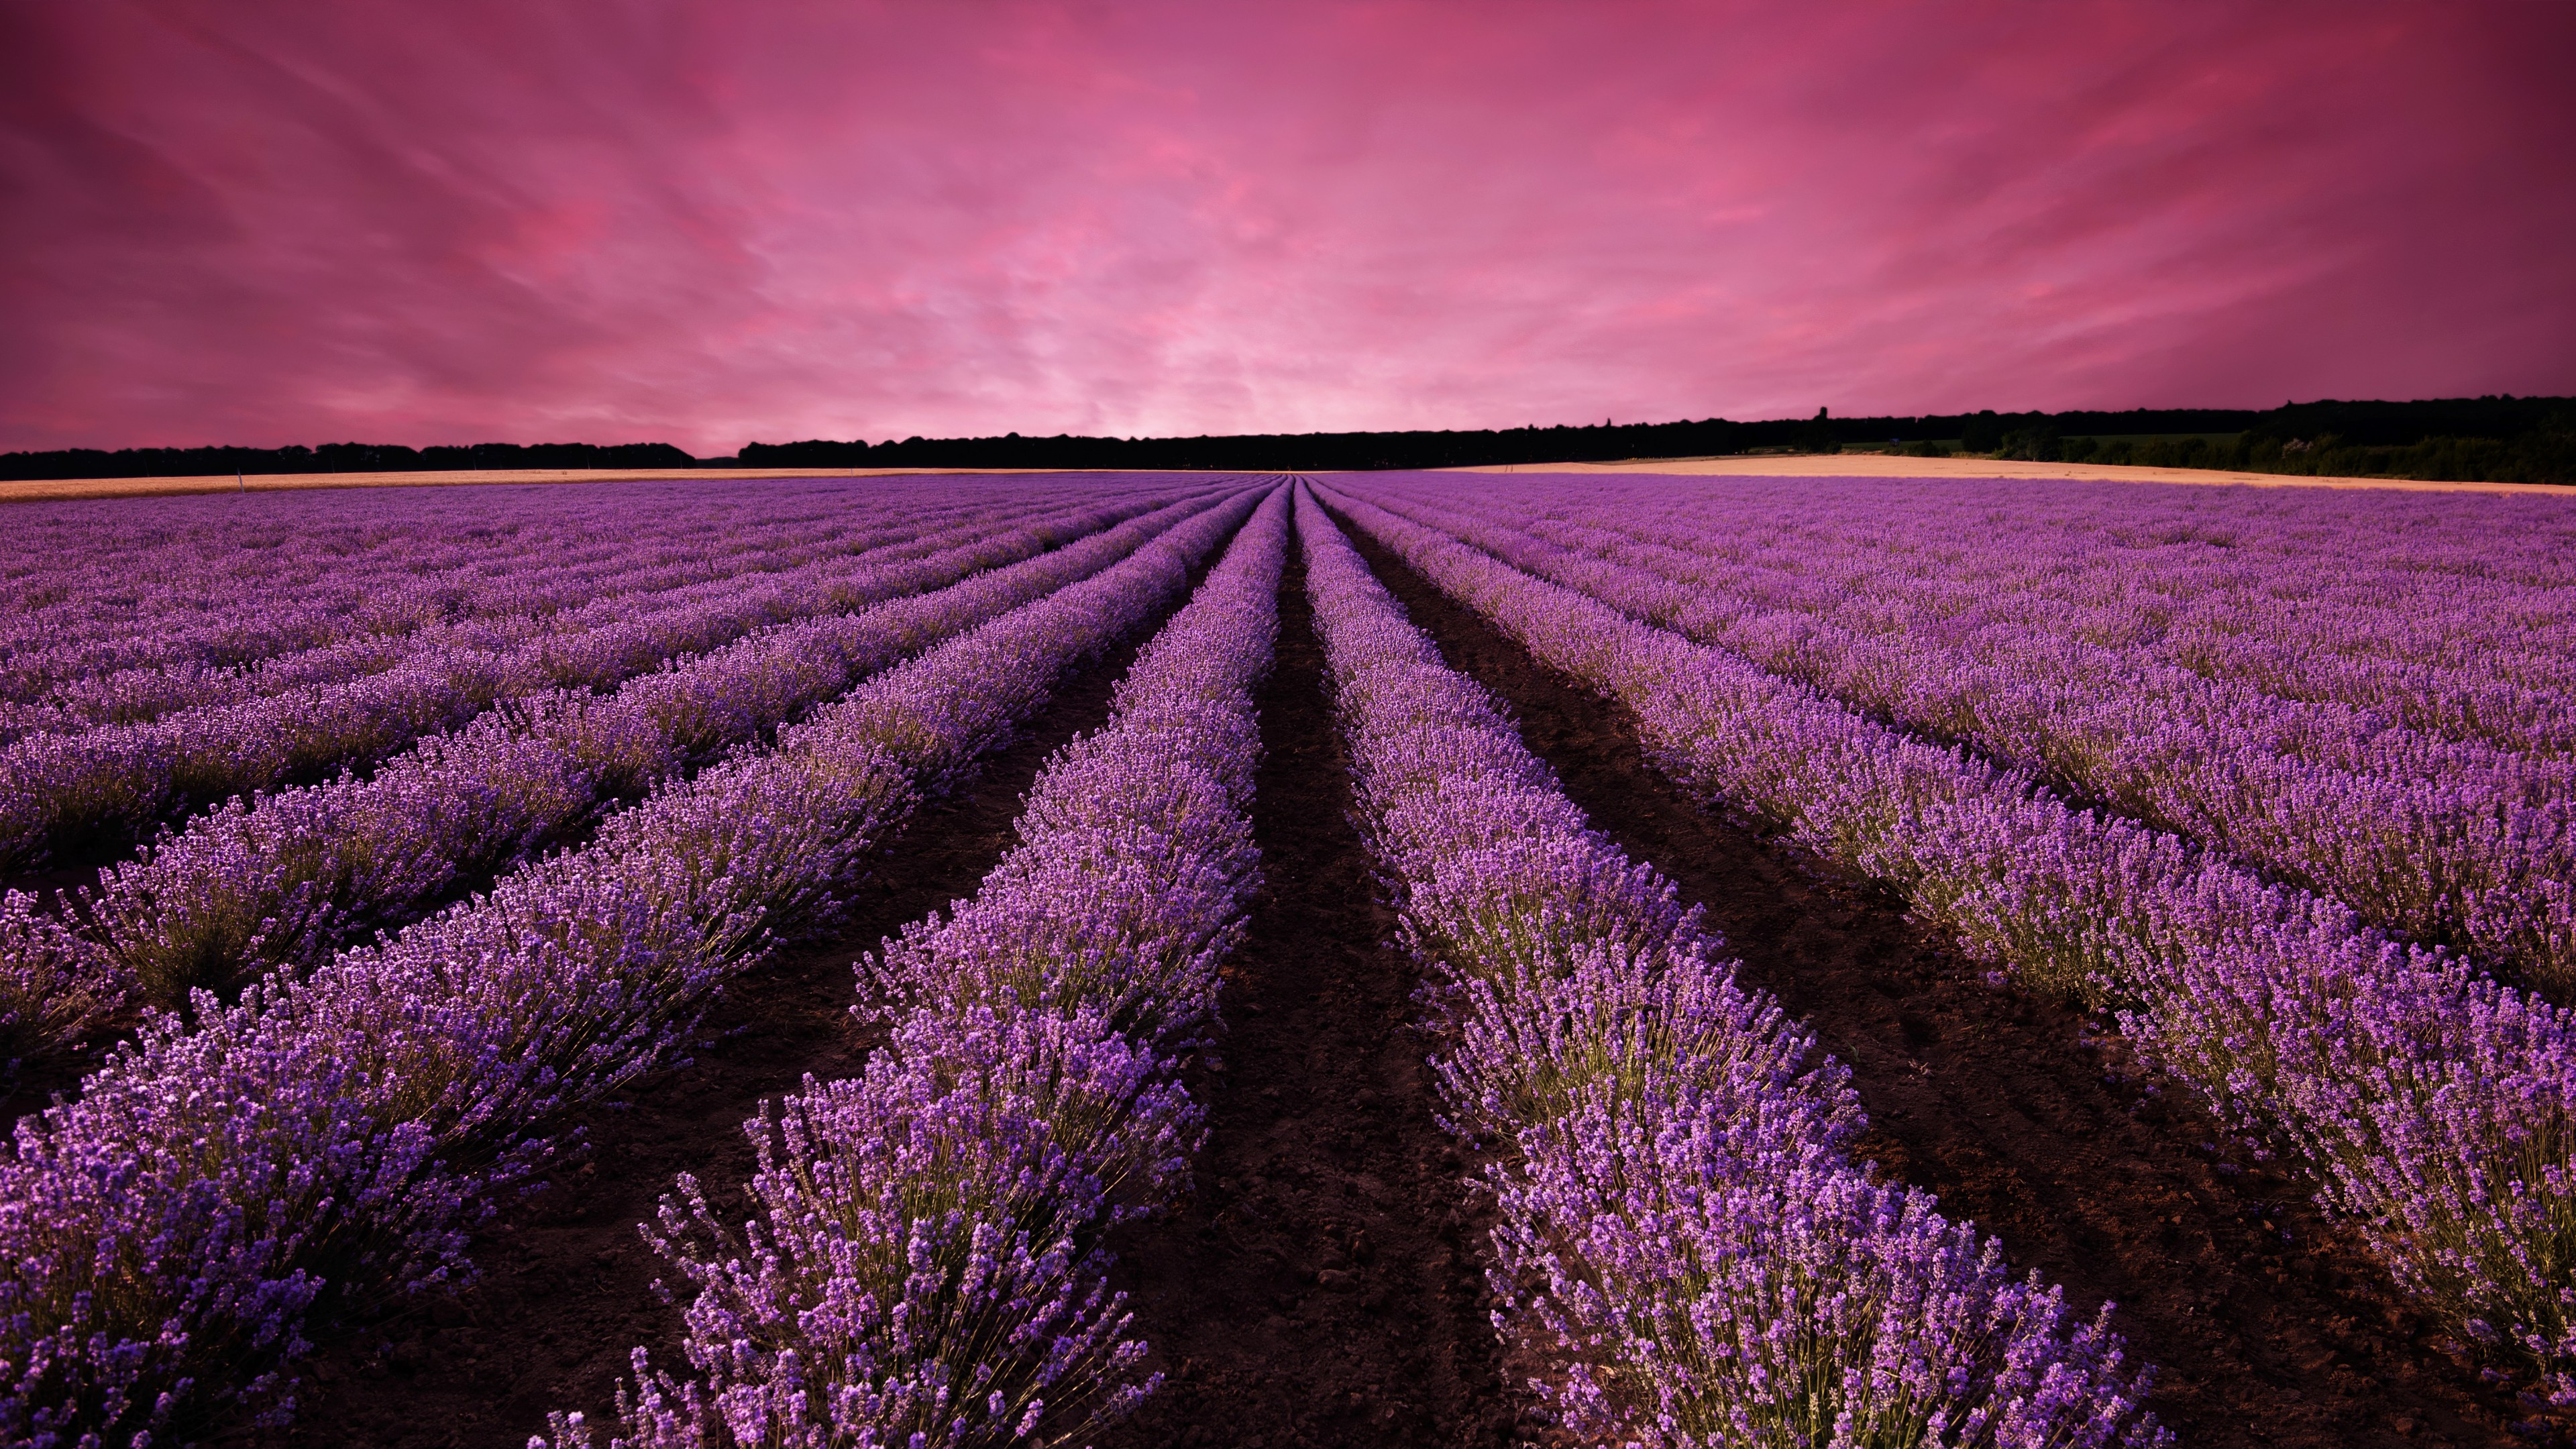 Ice Cream Wallpapers With Quotes Wallpaper Lavender Field Sky Mountain Provence France